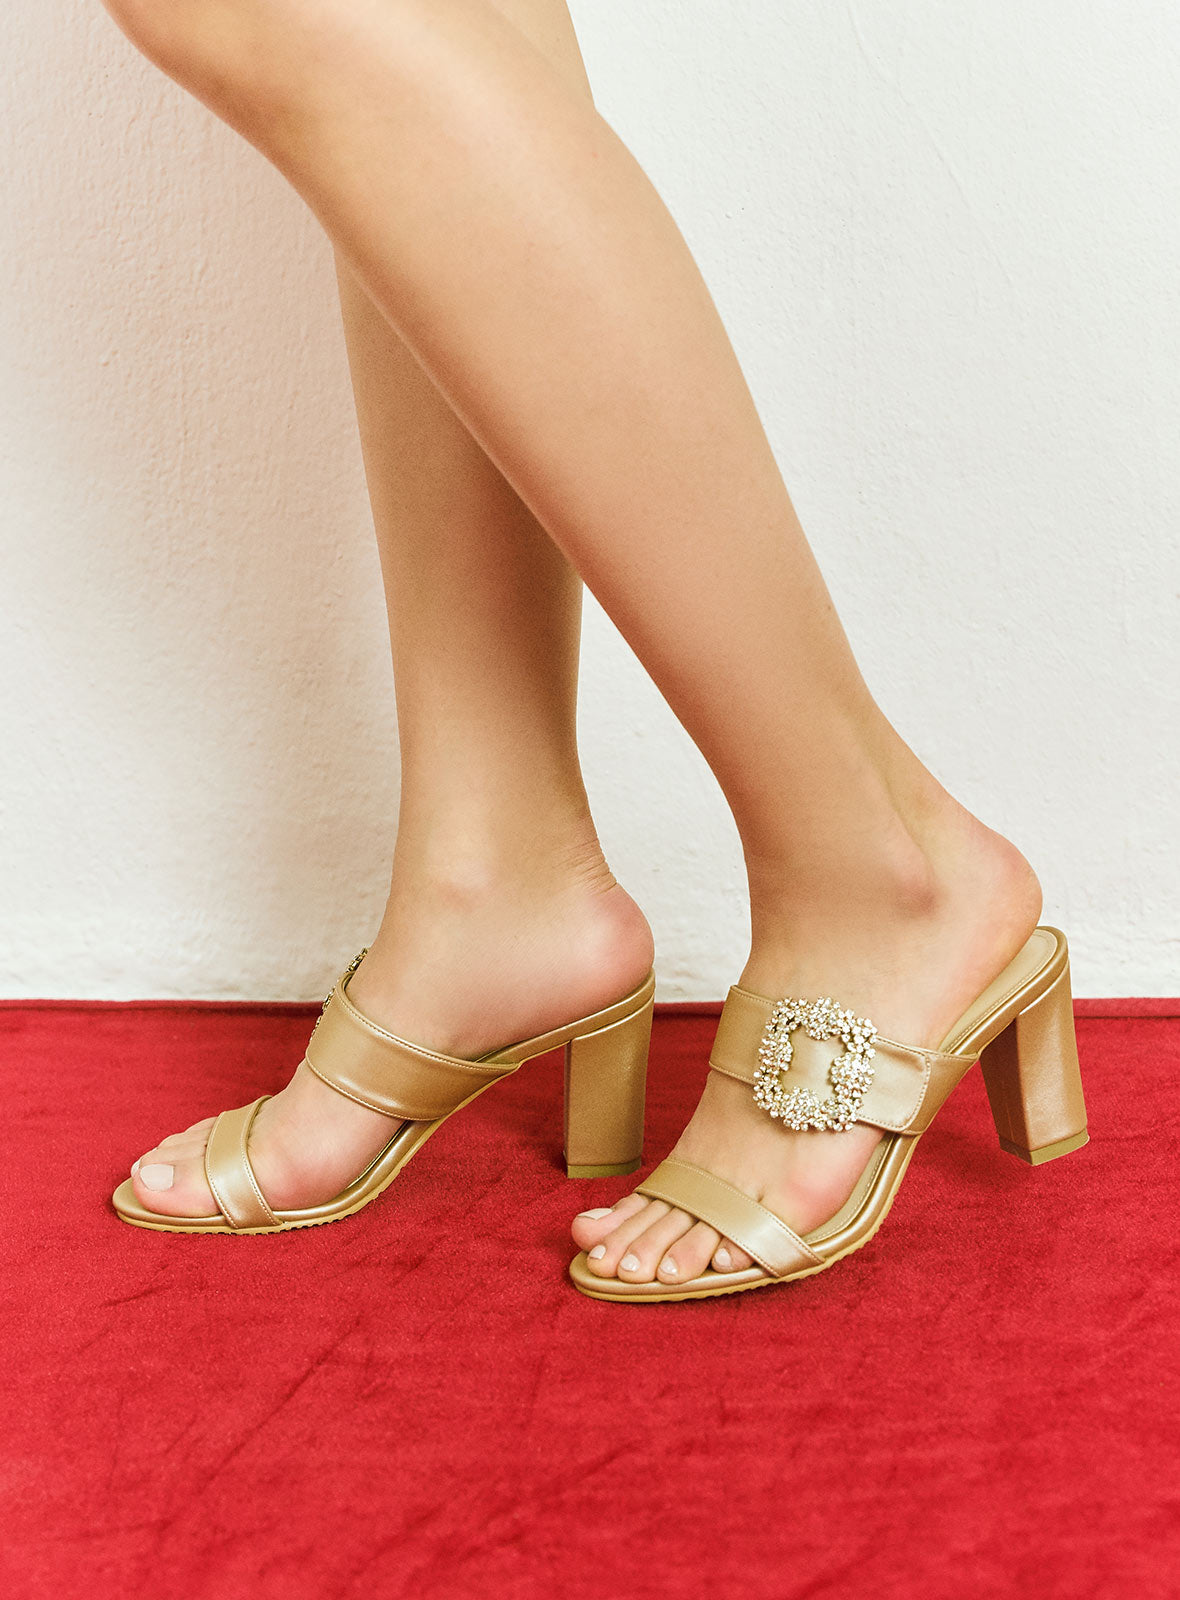 Madelyn Heels in Champagne